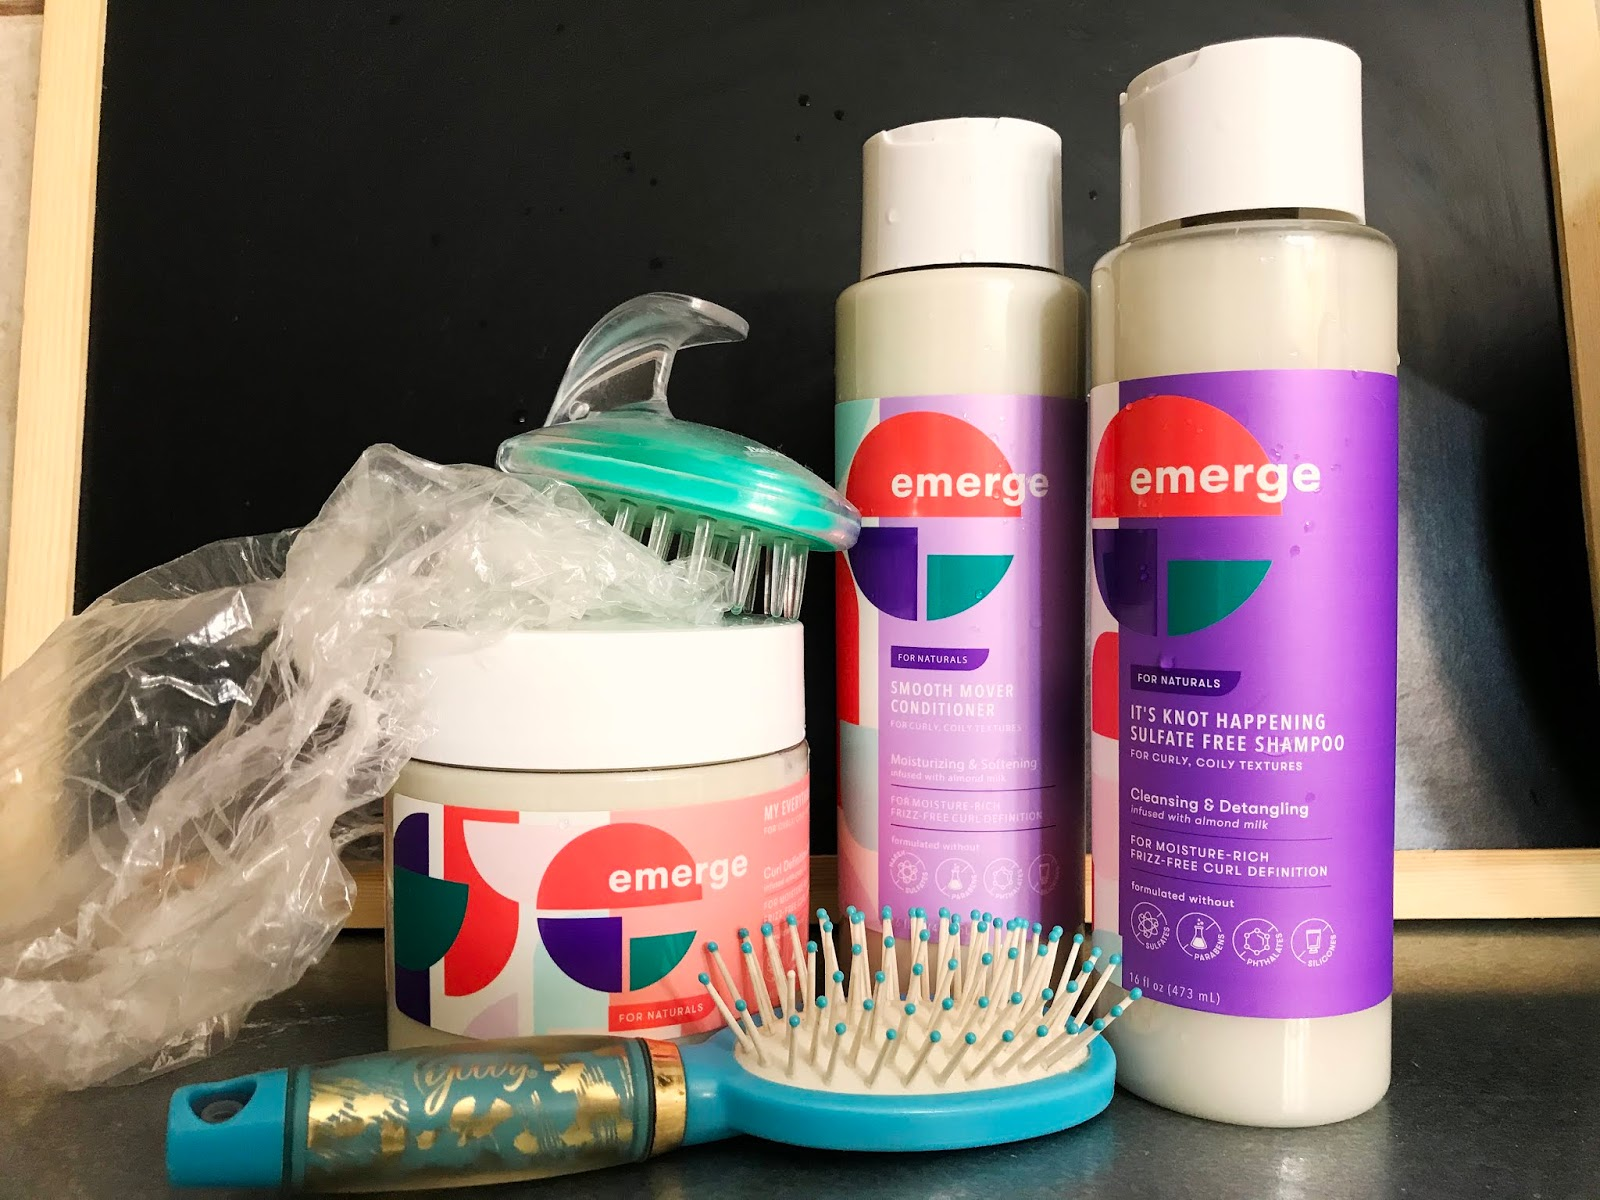 Emerge For Natural Hair Androgynine Androgynine